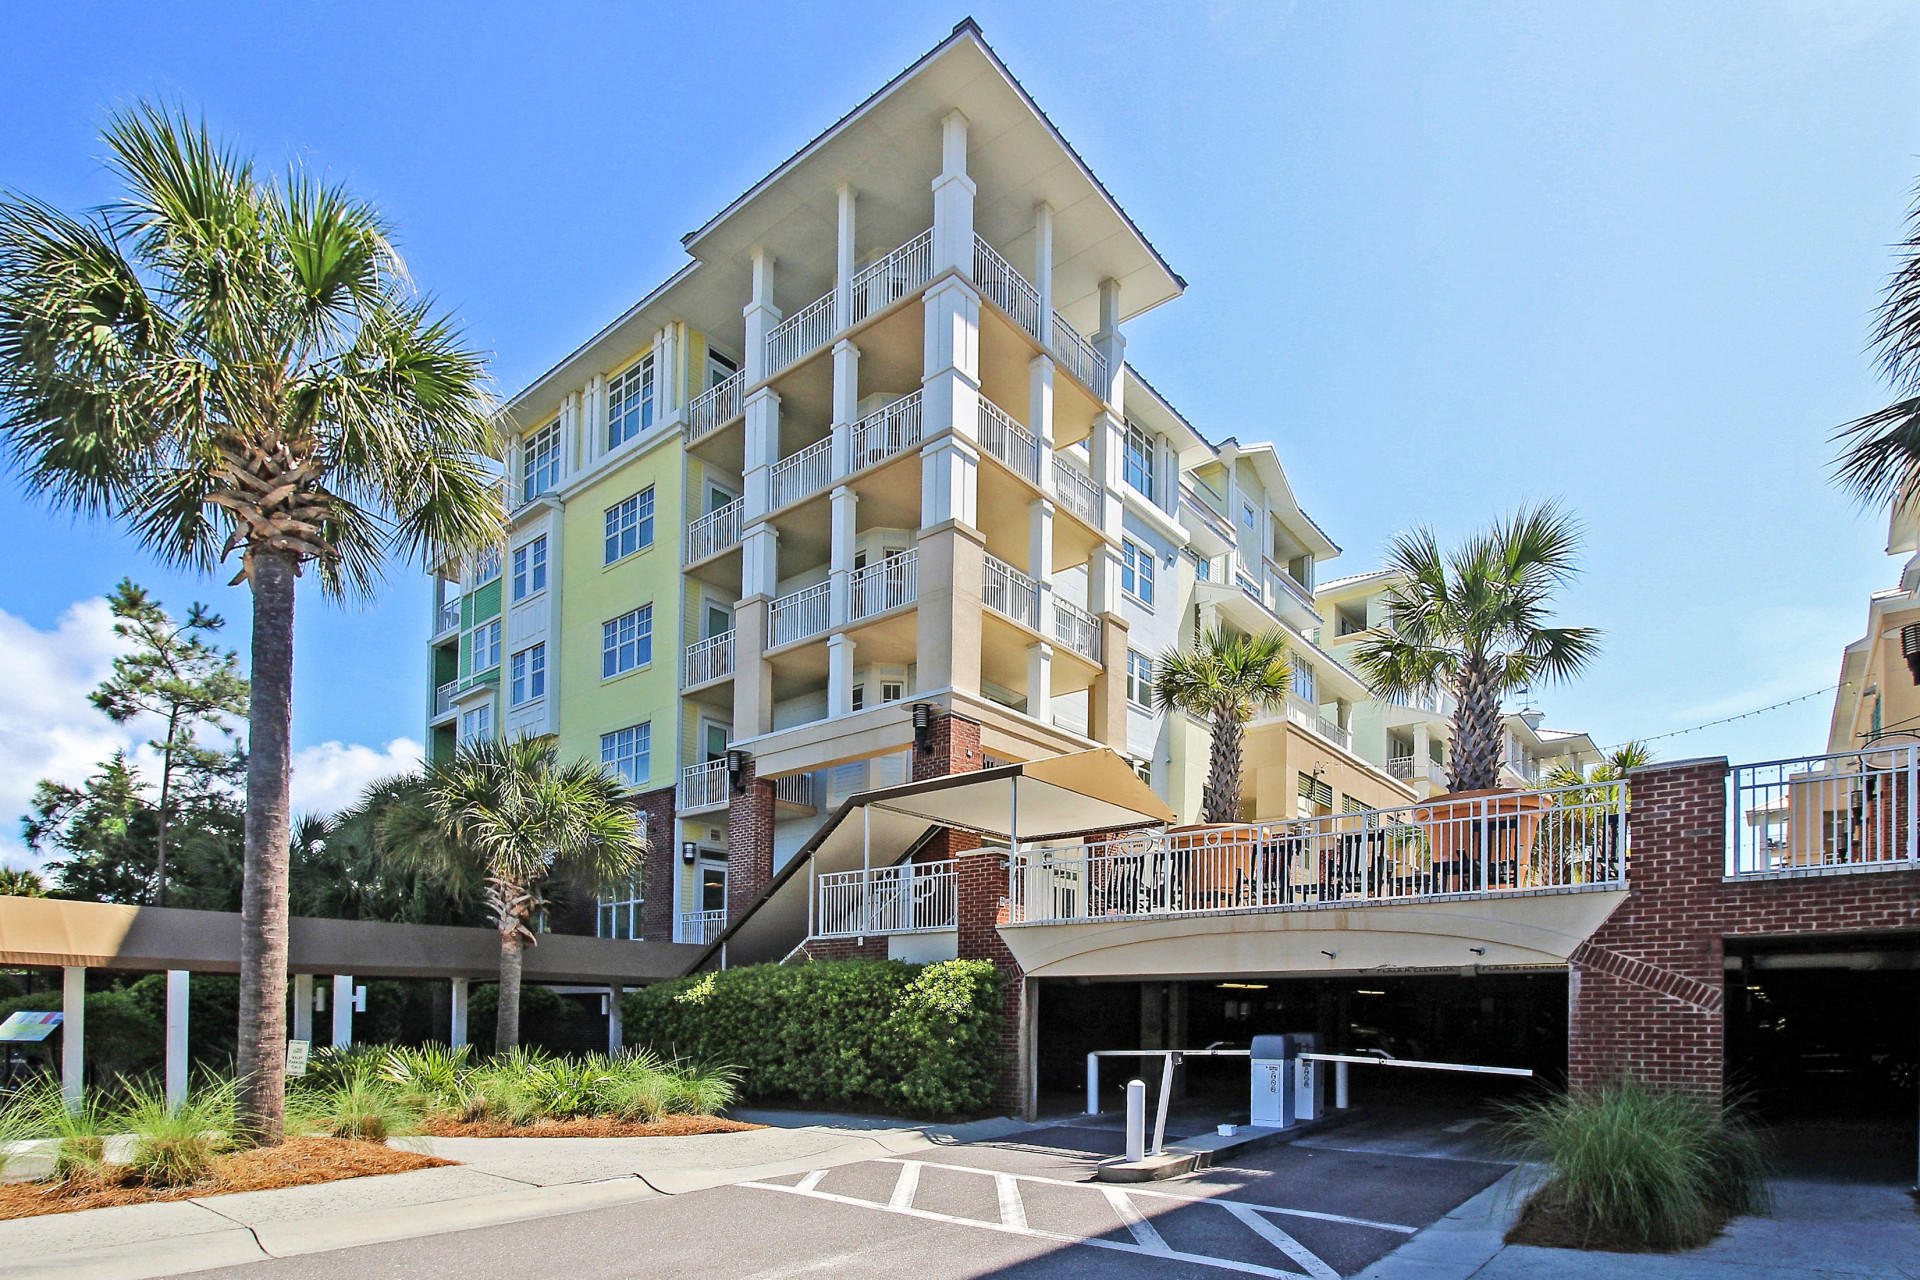 204 A204 Village Isle Of Palms, SC 29451